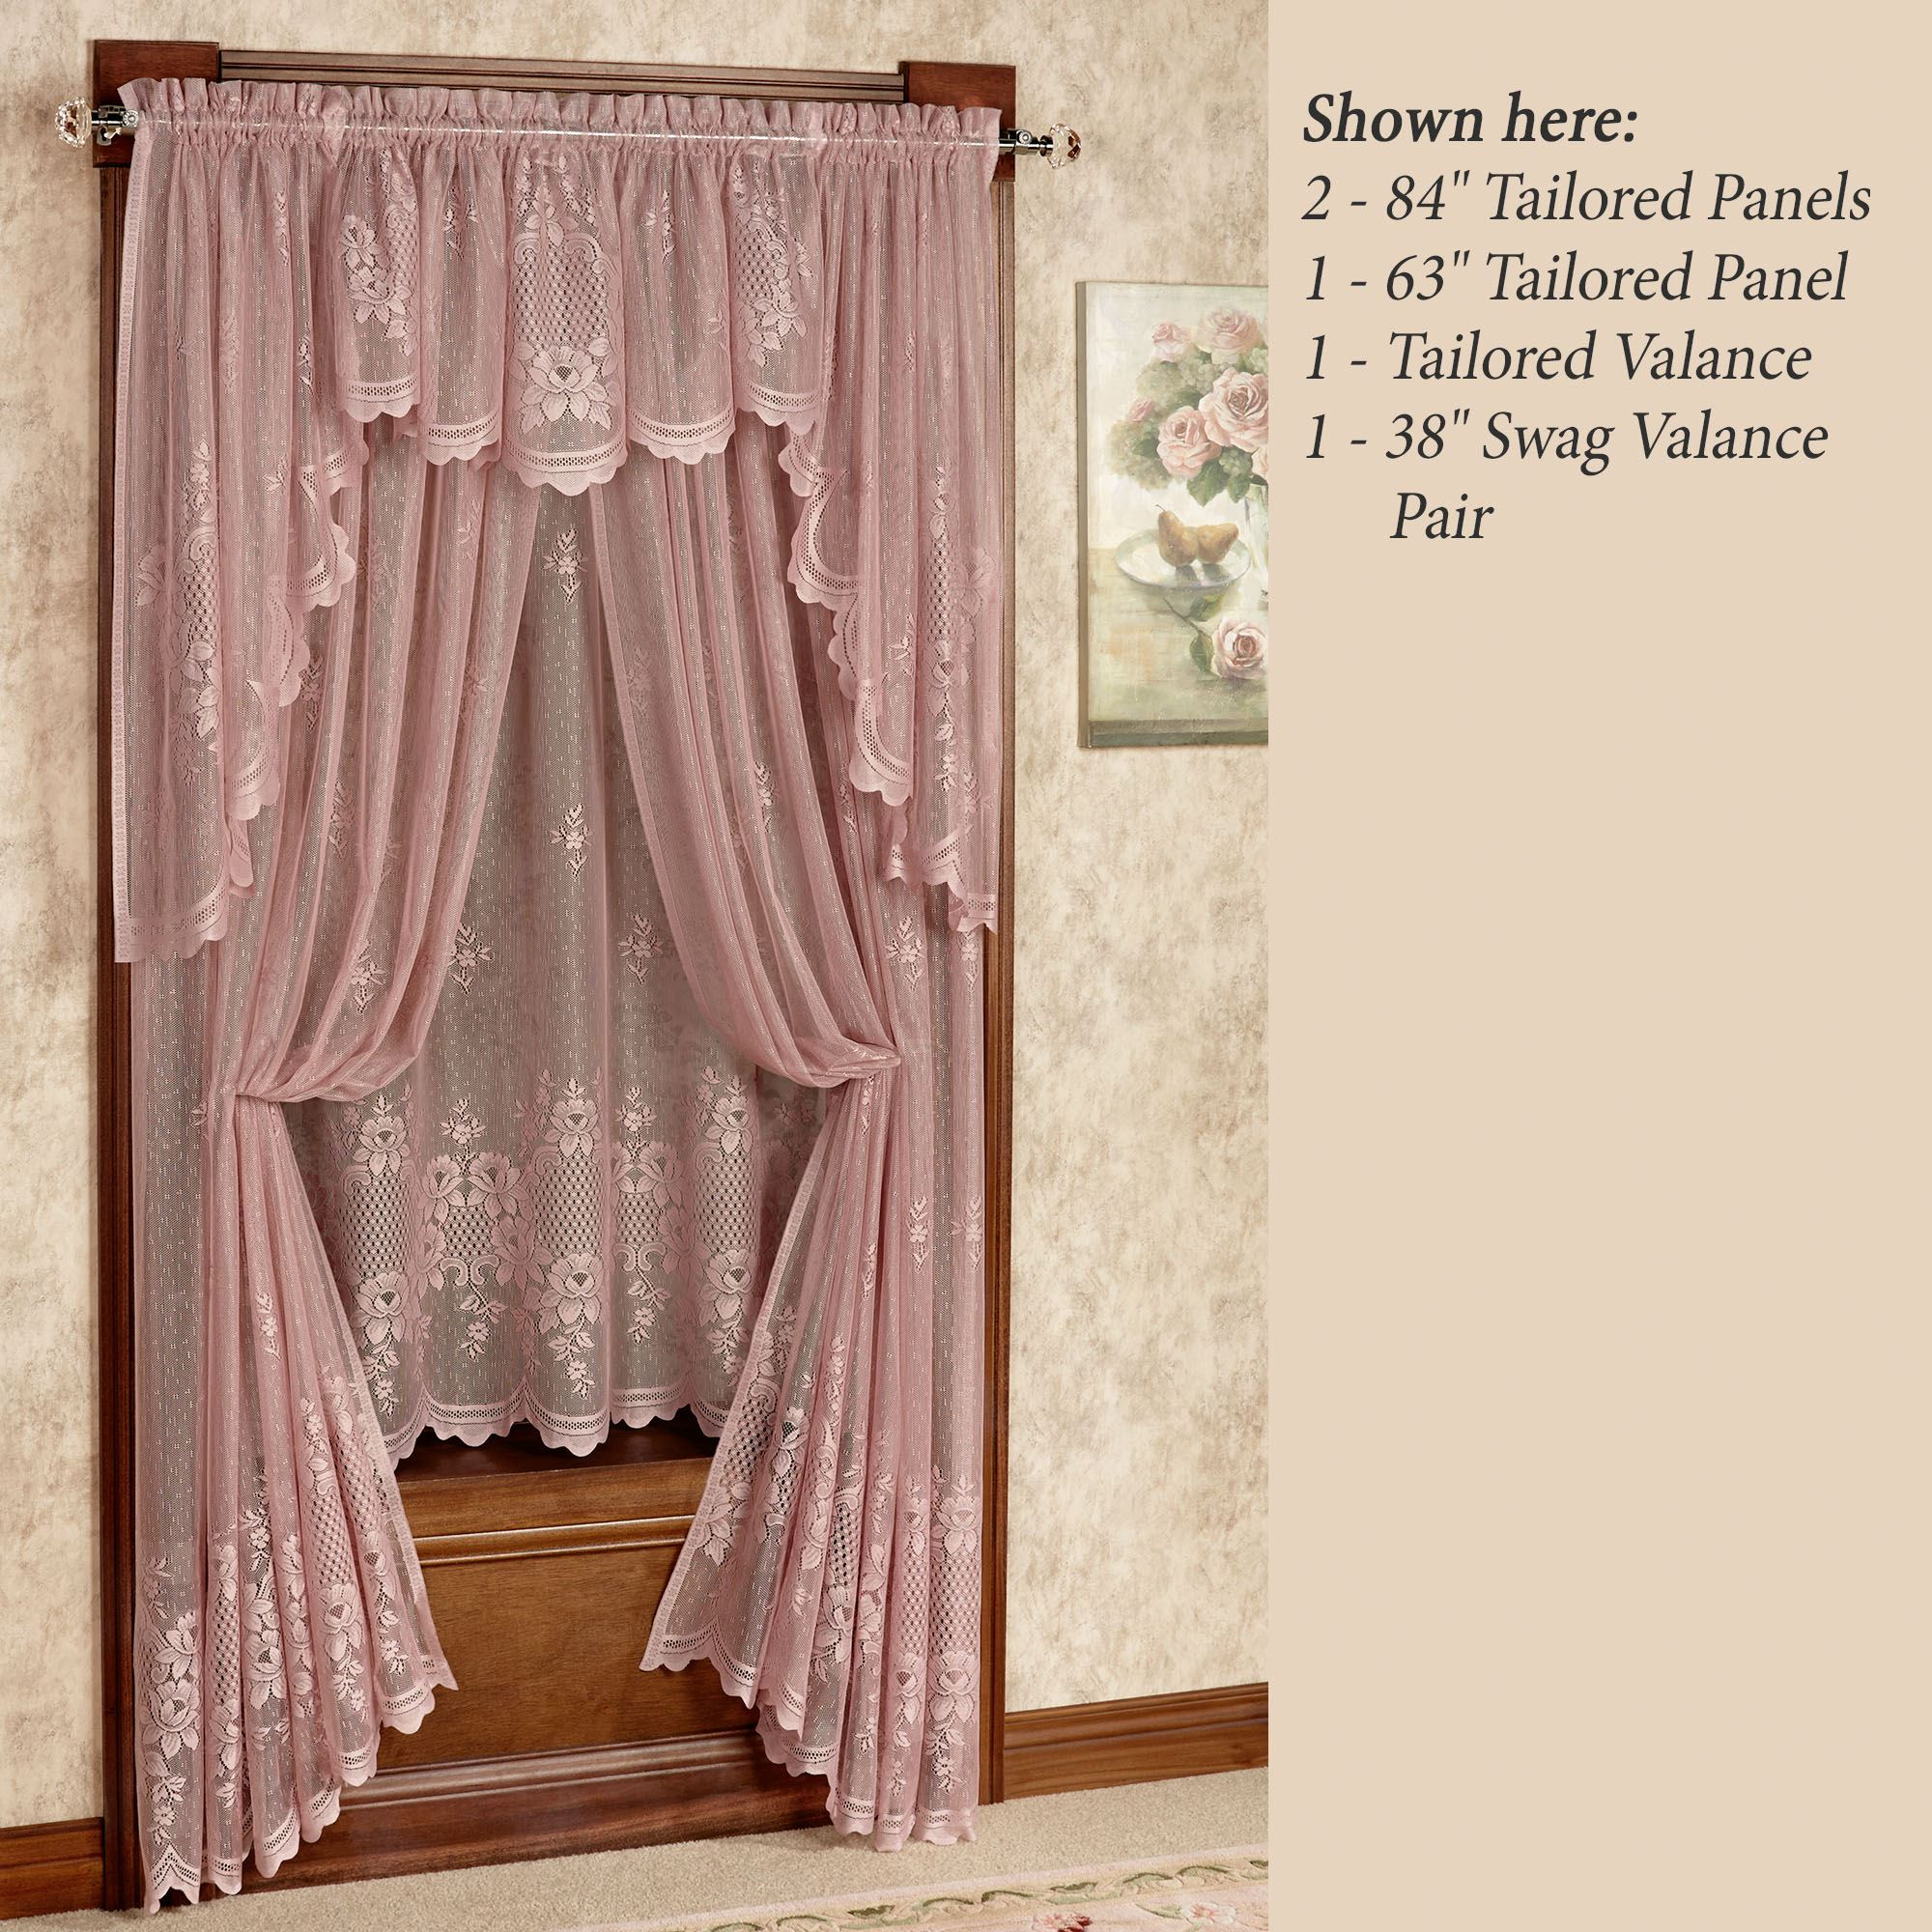 picture files for curtains of style victorian era and interior inspiring concept ideas design drapes amazing